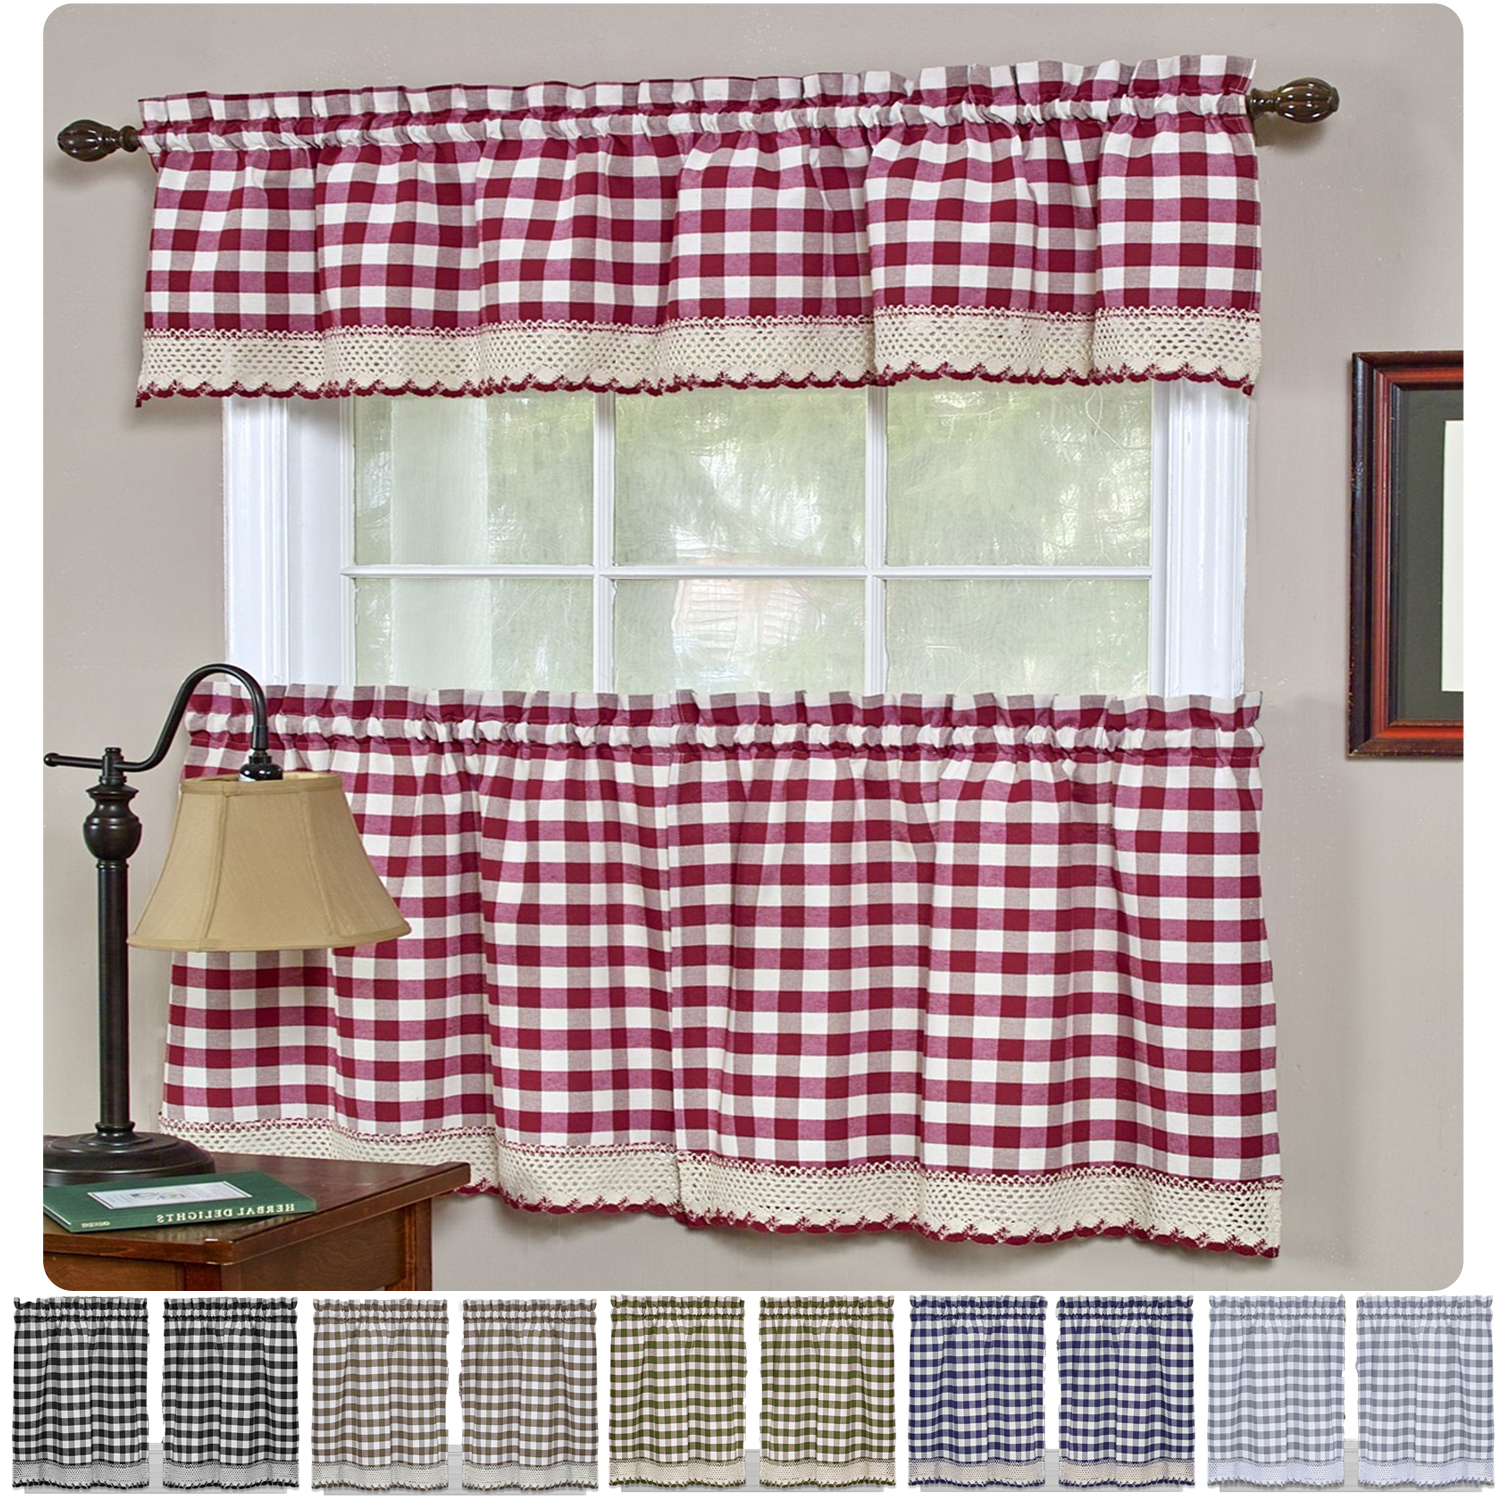 Best And Newest Window Curtain Tier And Valance Sets With Details About Window Curtain Tier Pair & Valance 3pc Set Checked Plaid Gingham Kitchen Panel (View 12 of 20)